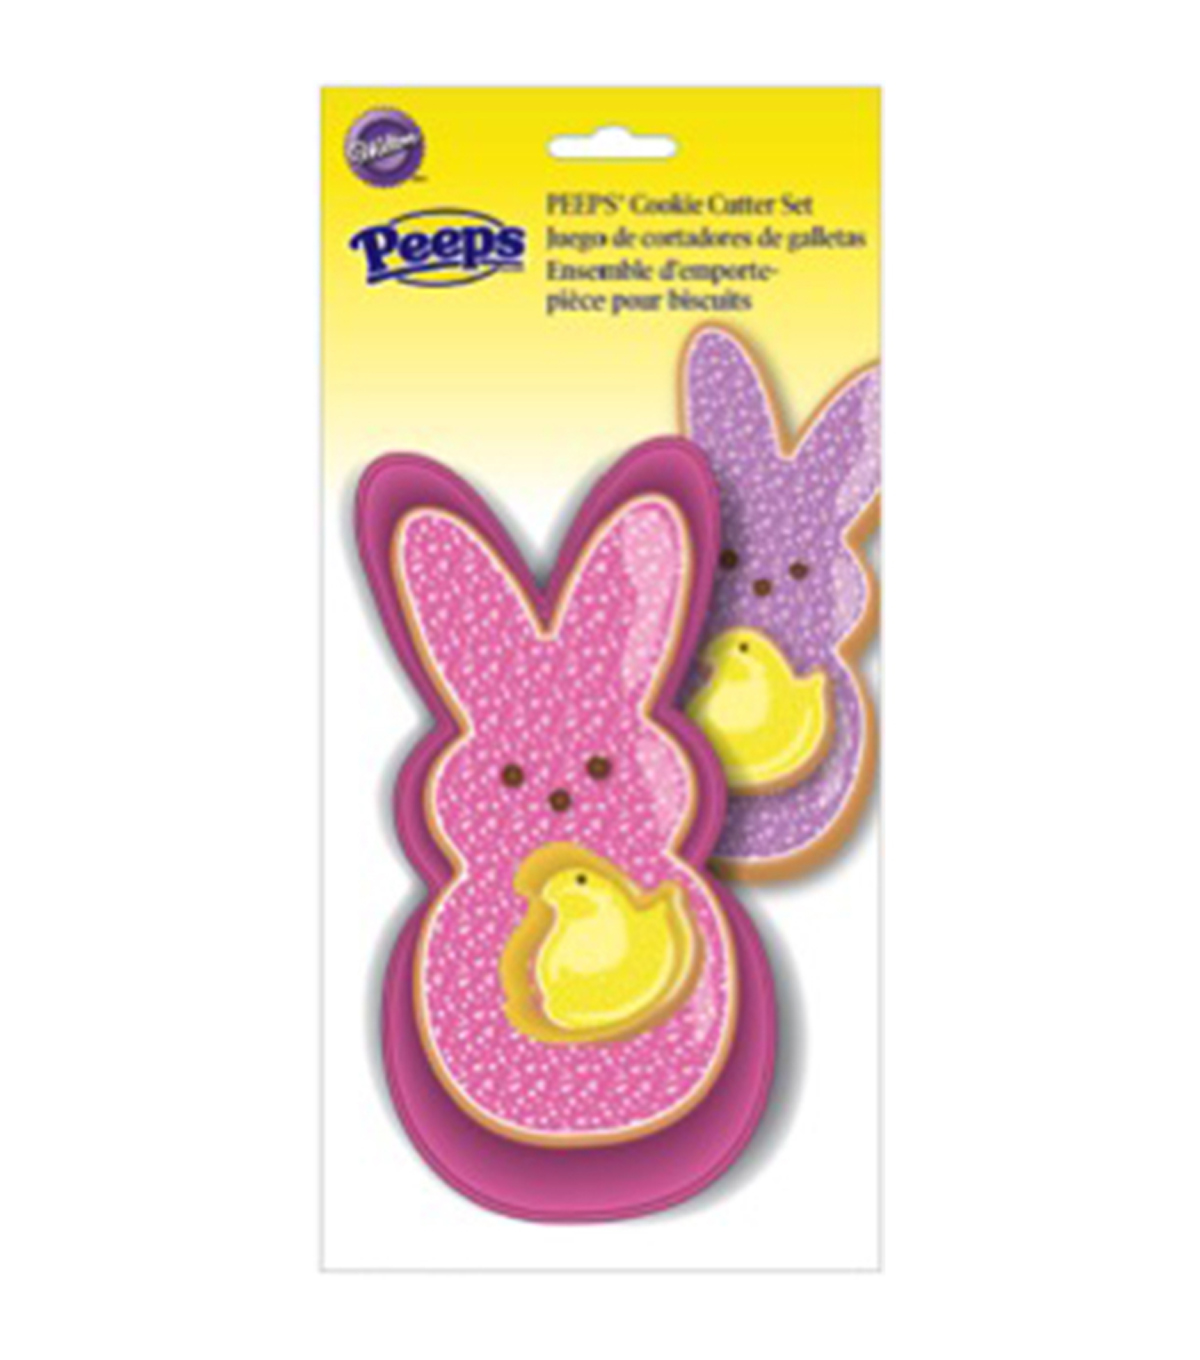 Wilton® 2 pc Cookie Cutter Set-Peeps Easter